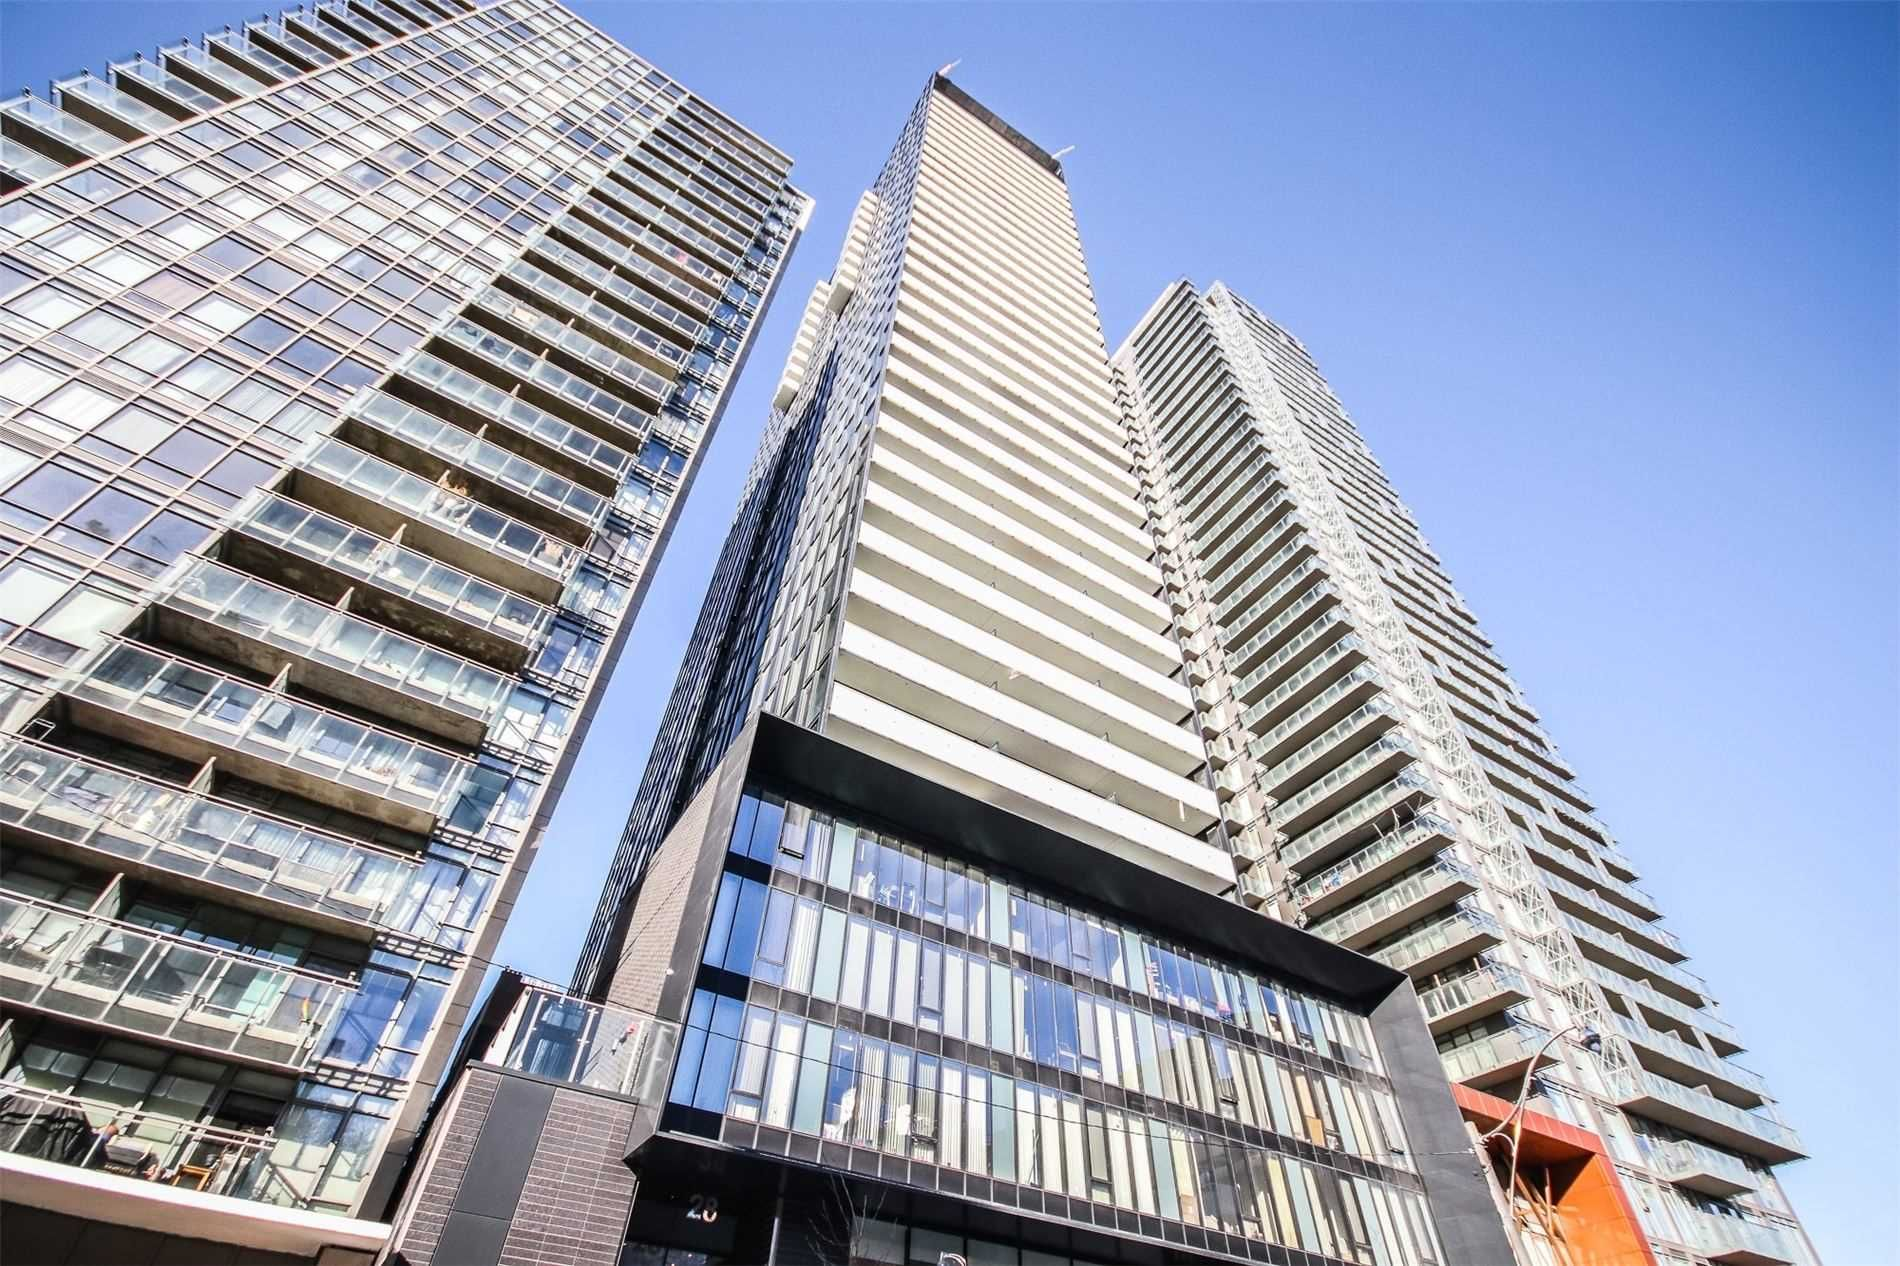 28 Wellesley St, unit 2110 for rent in Toronto - image #1